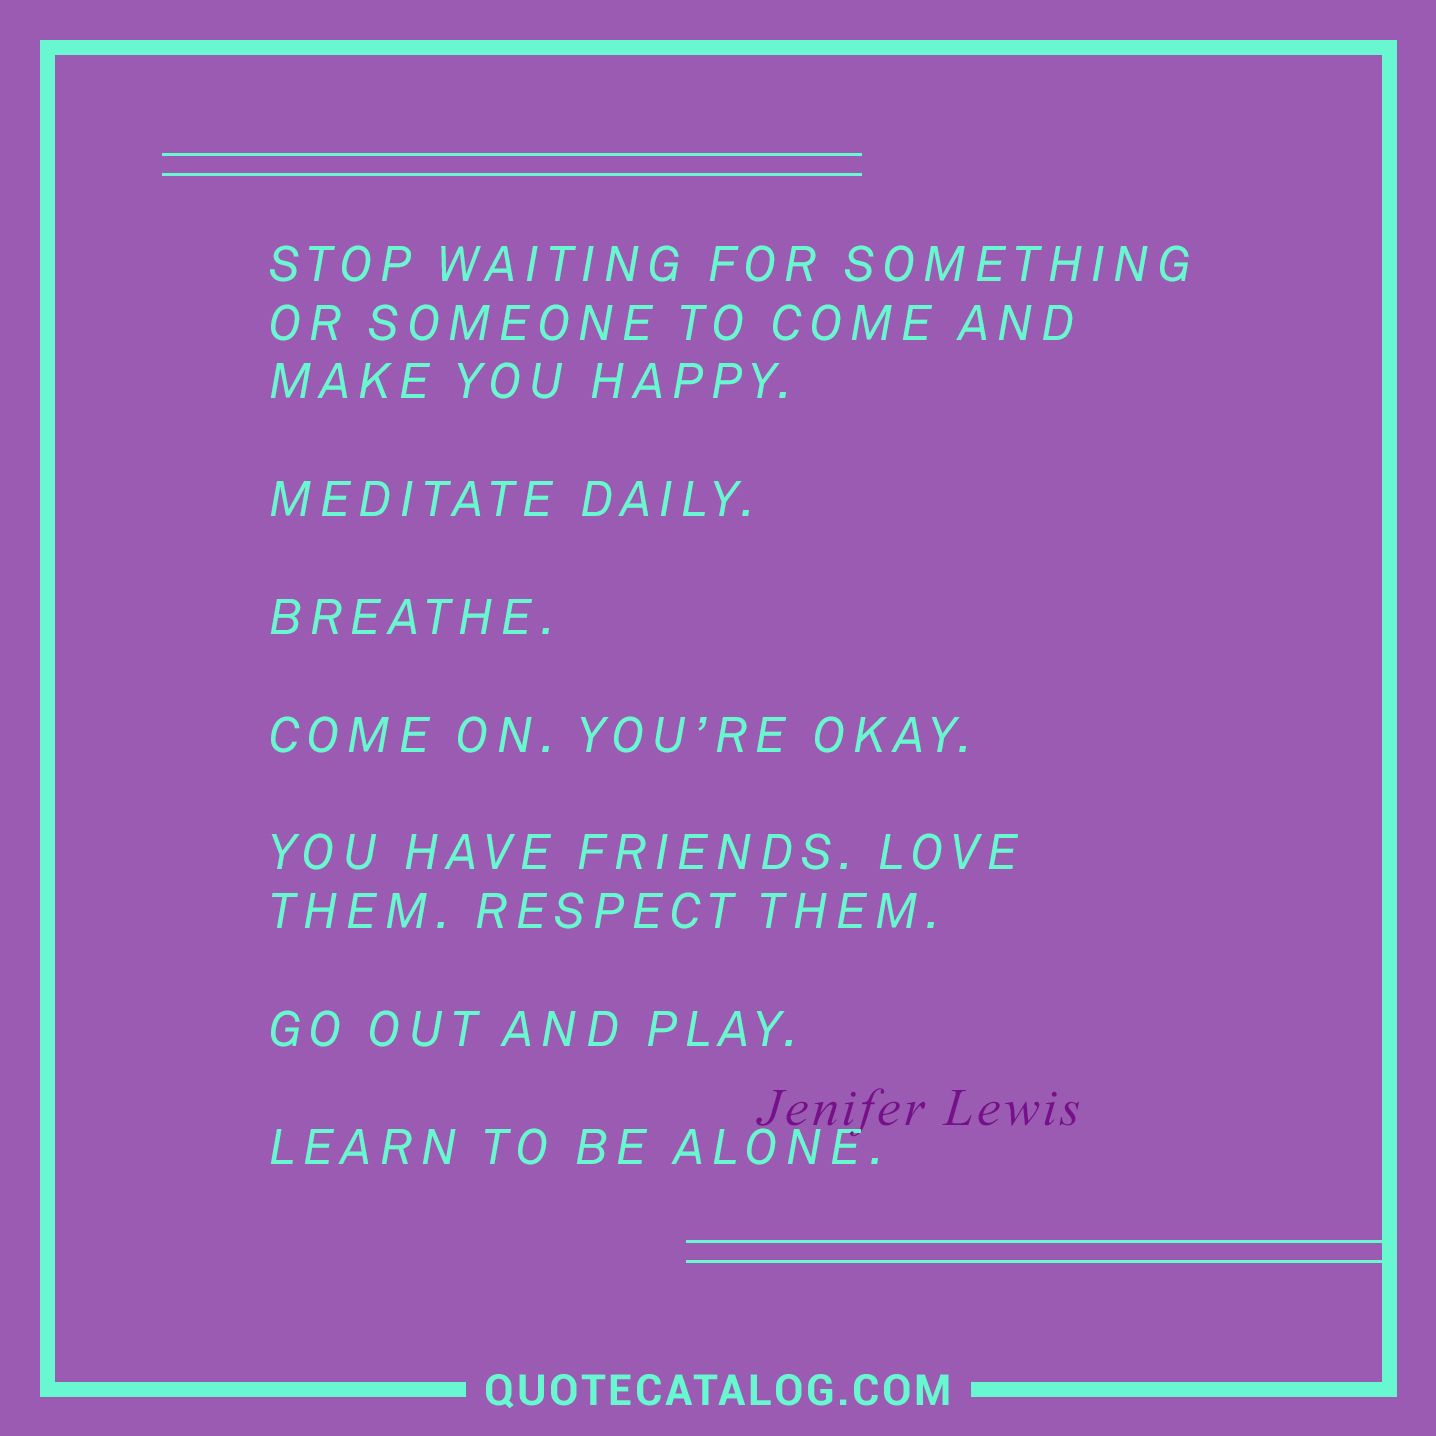 Jenifer Lewis Quote Stop Waiting For Something Or Someone To